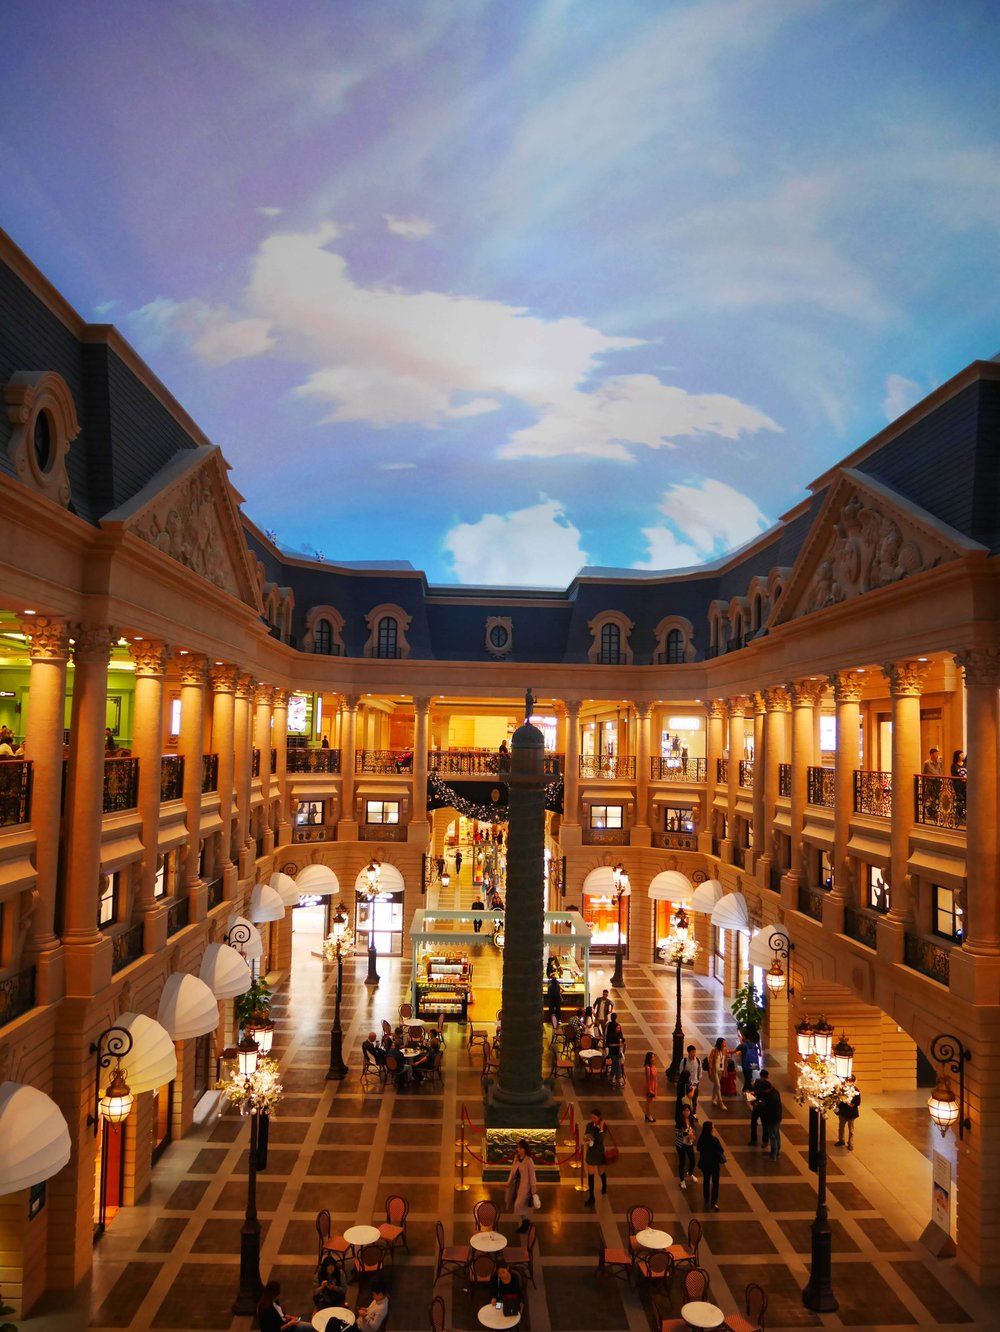 areas inside the Parisian Macau are designed to look like the streets of a French village